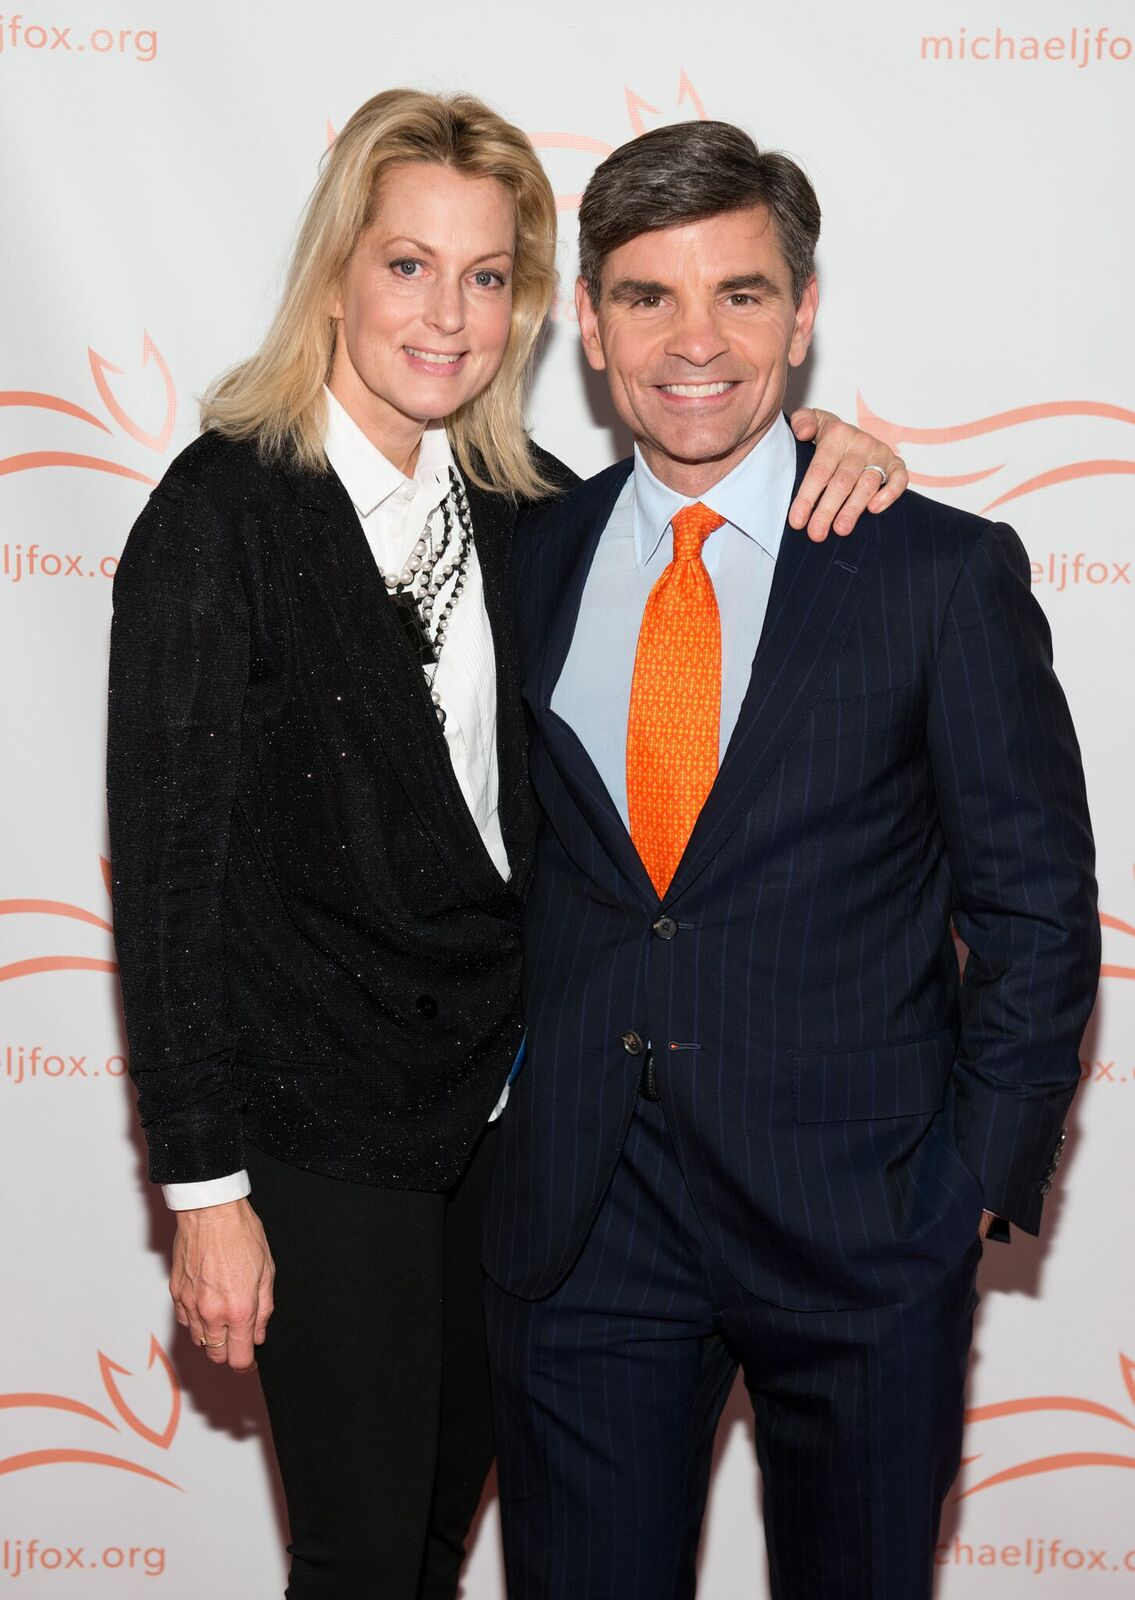 """Ali Wentworth and George Stephanopoulos at the Michael J. Fox Foundation's """"A Funny Thing Happened On The Way To Cure Parkinson's"""" Gala on November 14, 2015, in New York City 